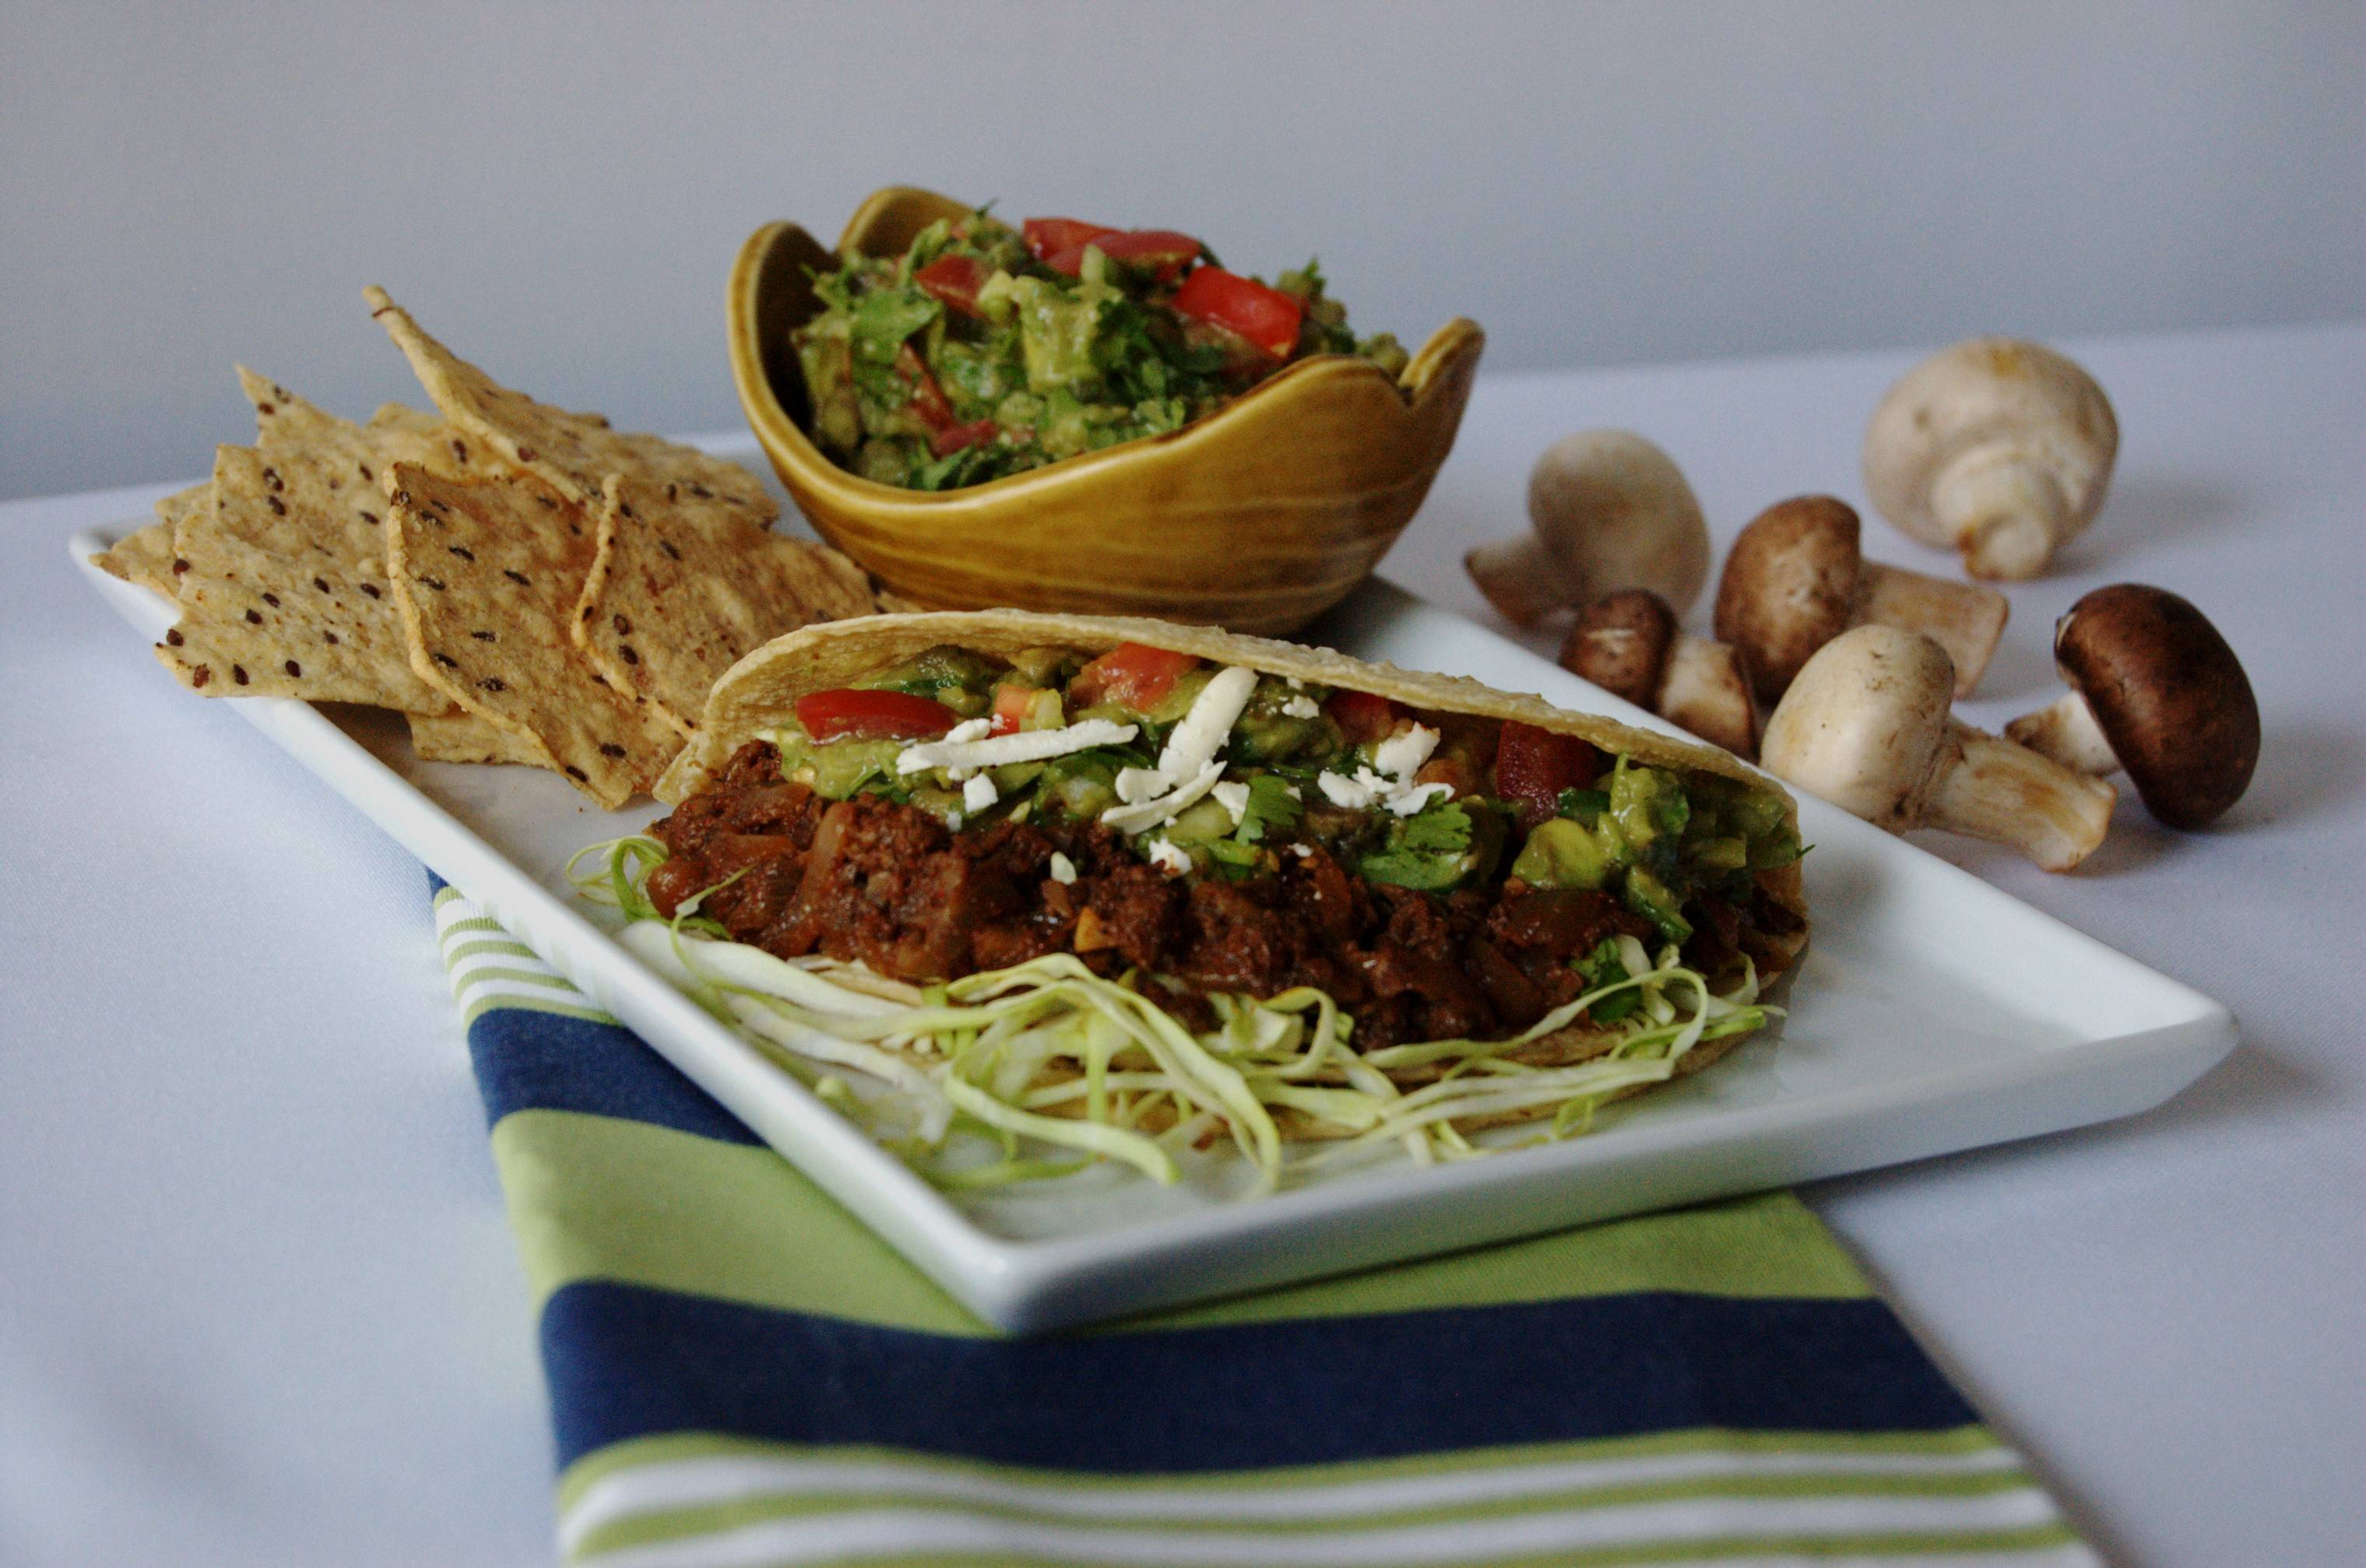 Adding chopped mushrooms to ground beef raises the nutrition profile and lowers the per-portion cost of these Mushroom Tacos with Salsa Verde.